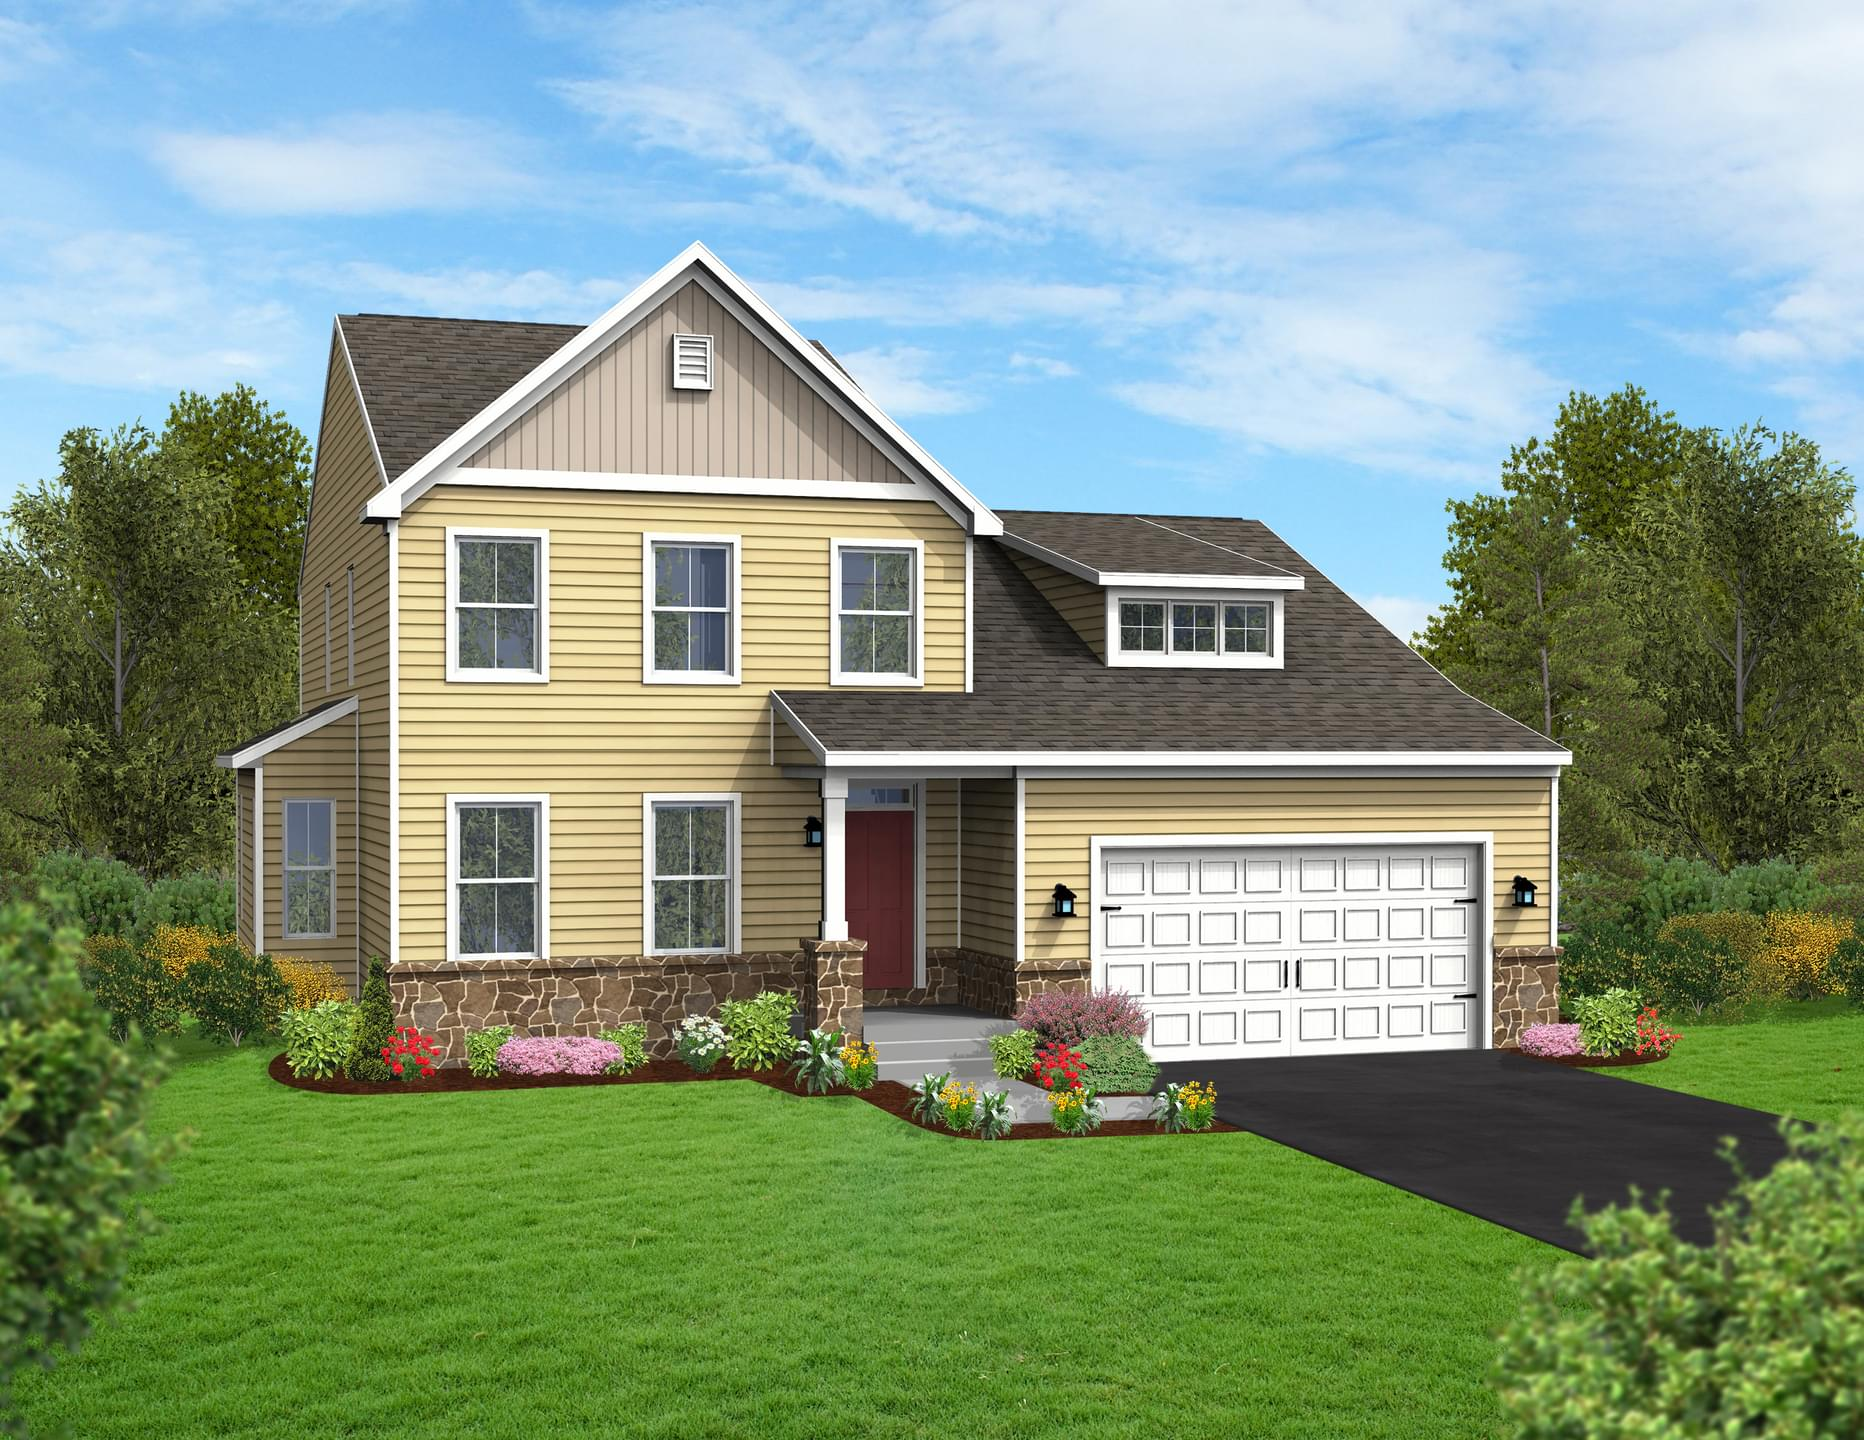 Berks Homes Elevation Image Brindlee